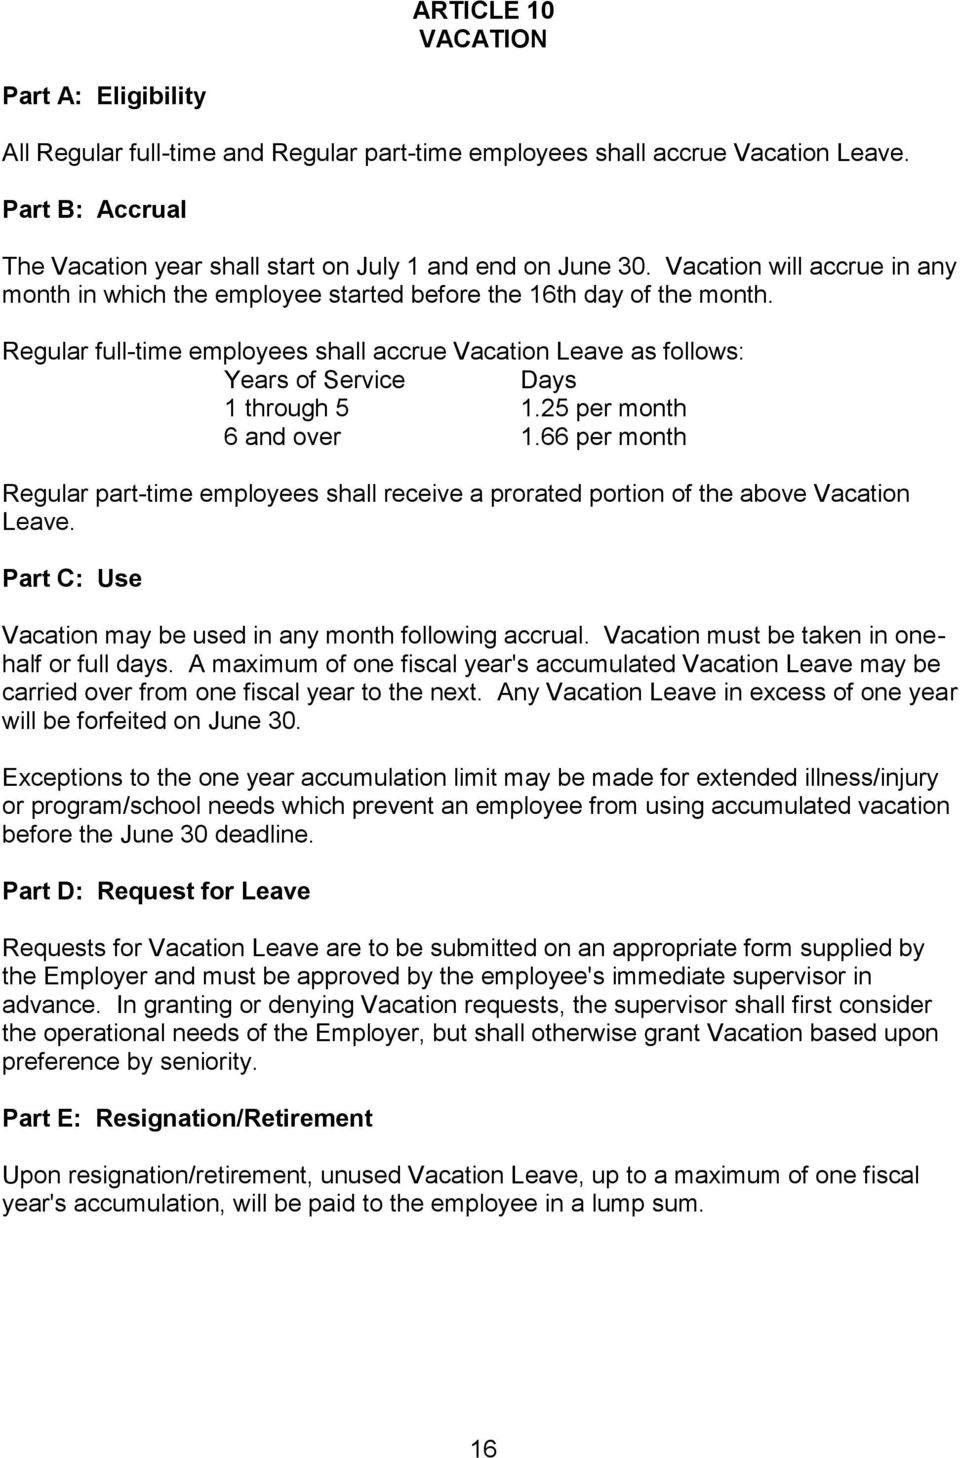 Regular full-time employees shall accrue Vacation Leave as follows: Years of Service Days 1 through 5 1.25 per month 6 and over 1.